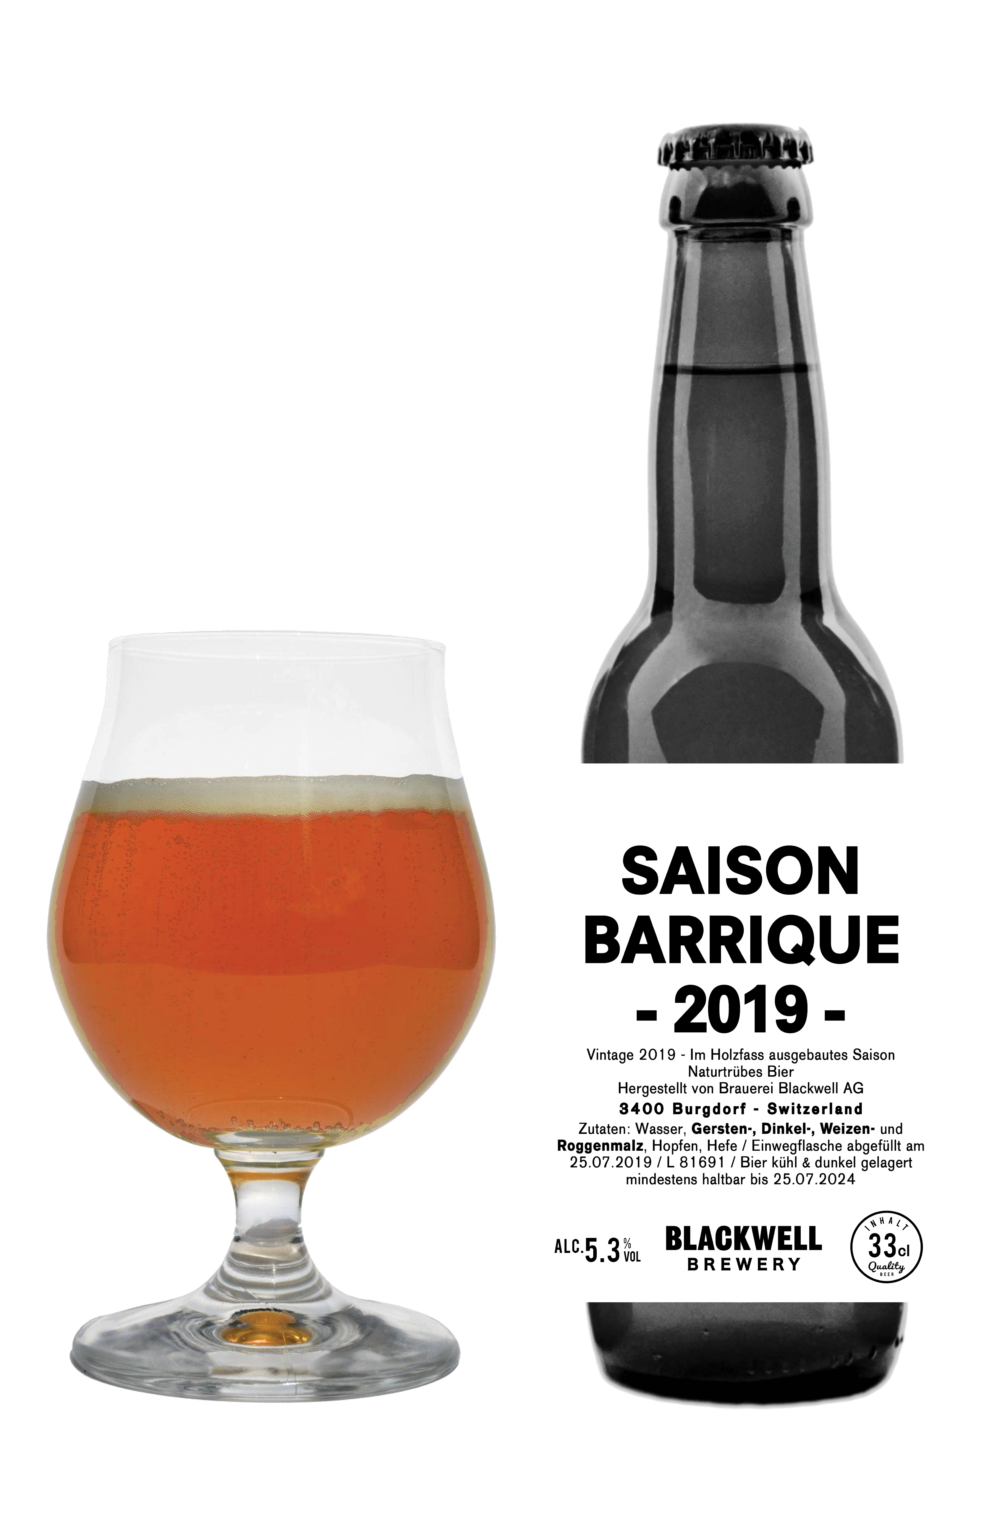 https://blackwellbrewery.ch/wp-content/uploads/2020/05/Barrique19Blackwell-1-e1614258093615.png